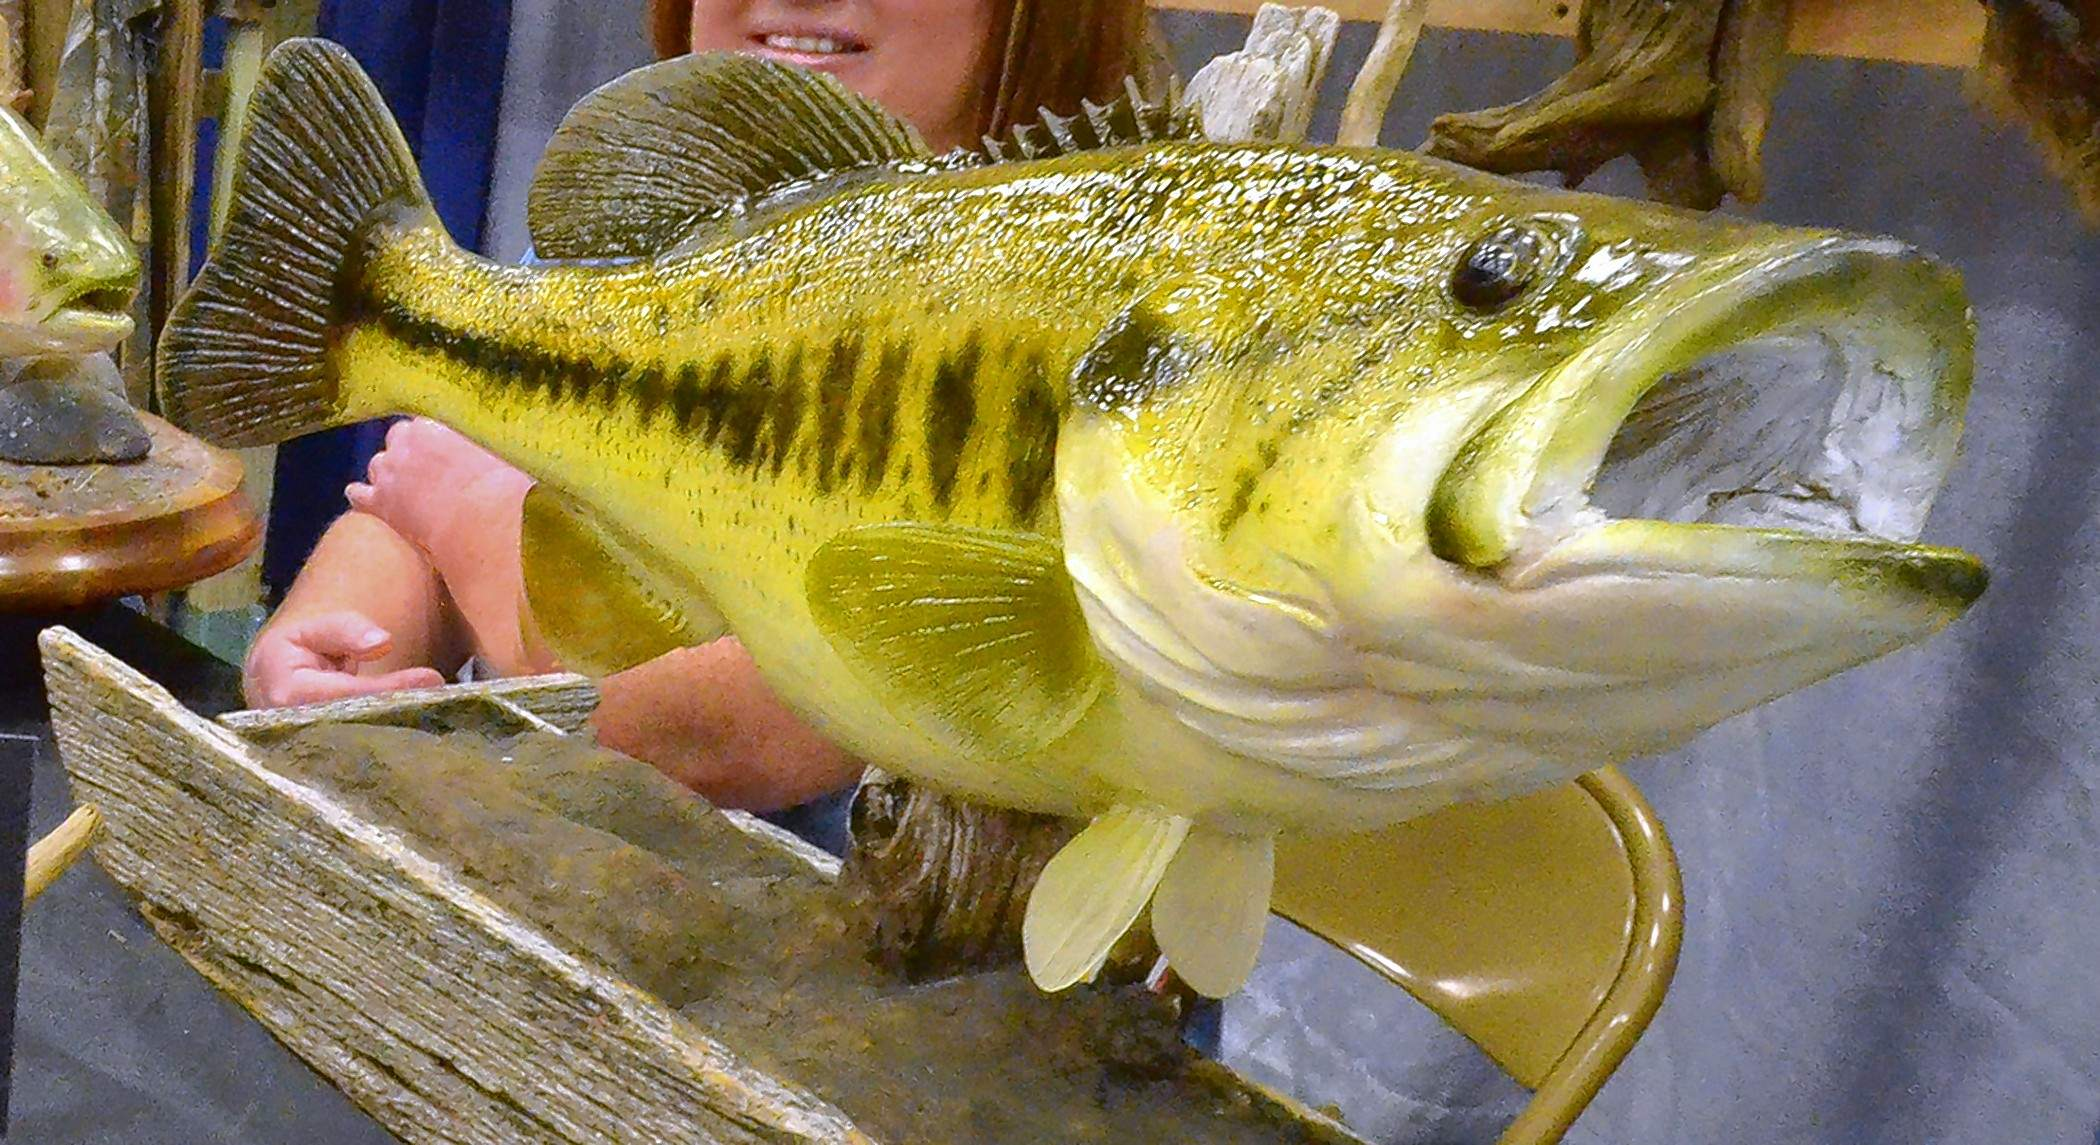 A beautiful example of McGill's taxidermy skill is evident in this bass.